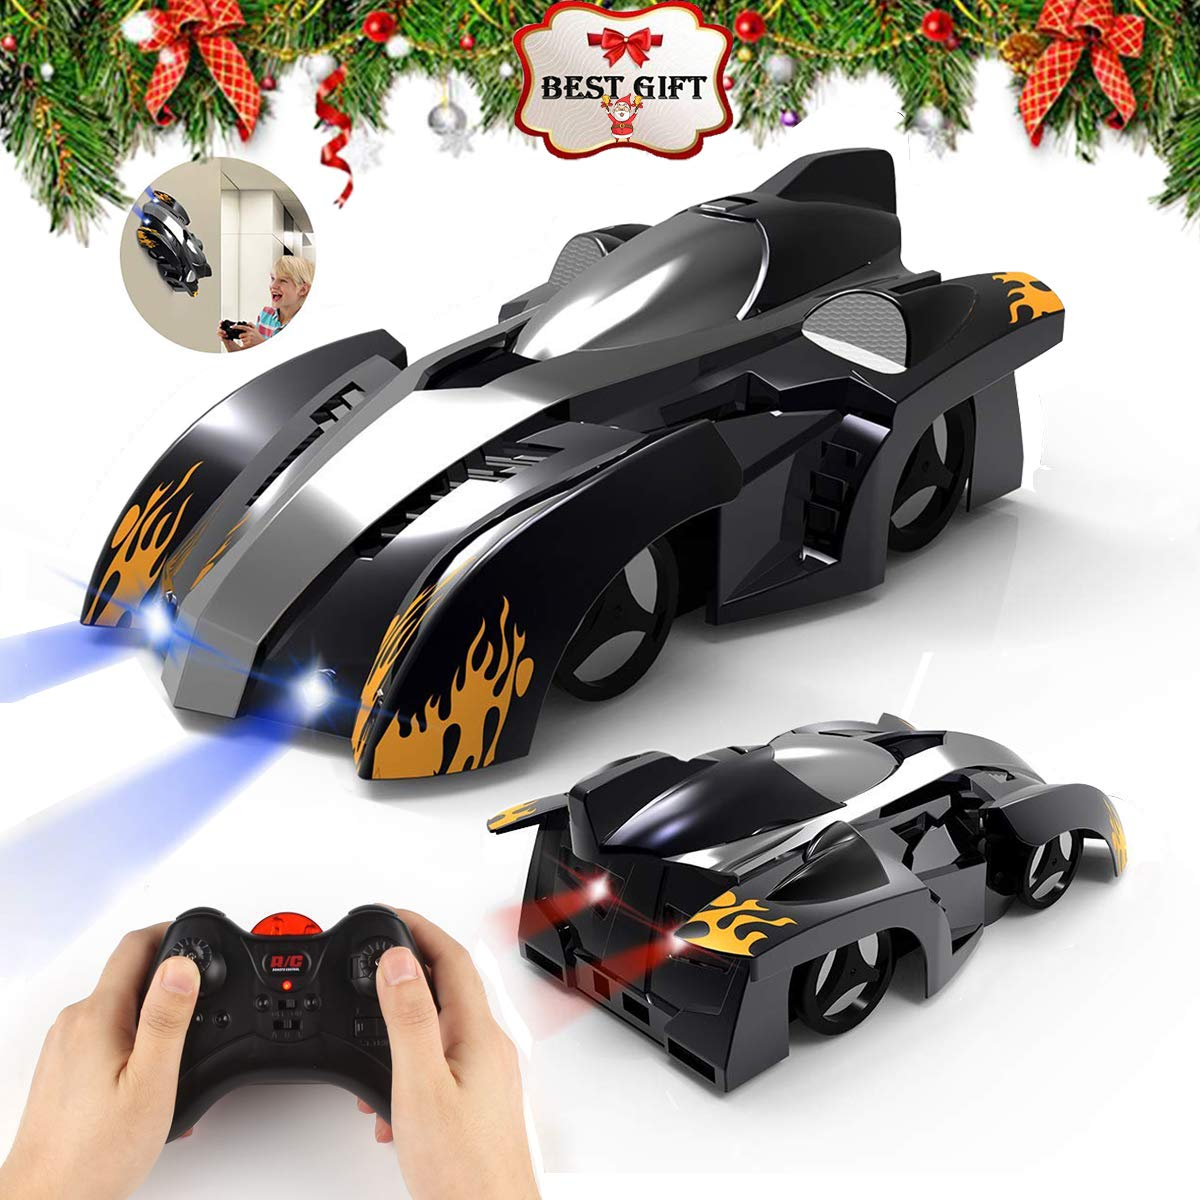 Remote Control Car, Morpilot Rechargeable Kids Toys Wall Climbing Cars with upgrade Remote Control, Dual Mode 360° Rotation Stunt RC Cars Vehicles, LED Head Gravity-Defying, Gift for Kids Boy Girl Teenagers Adults Birthday Gifts